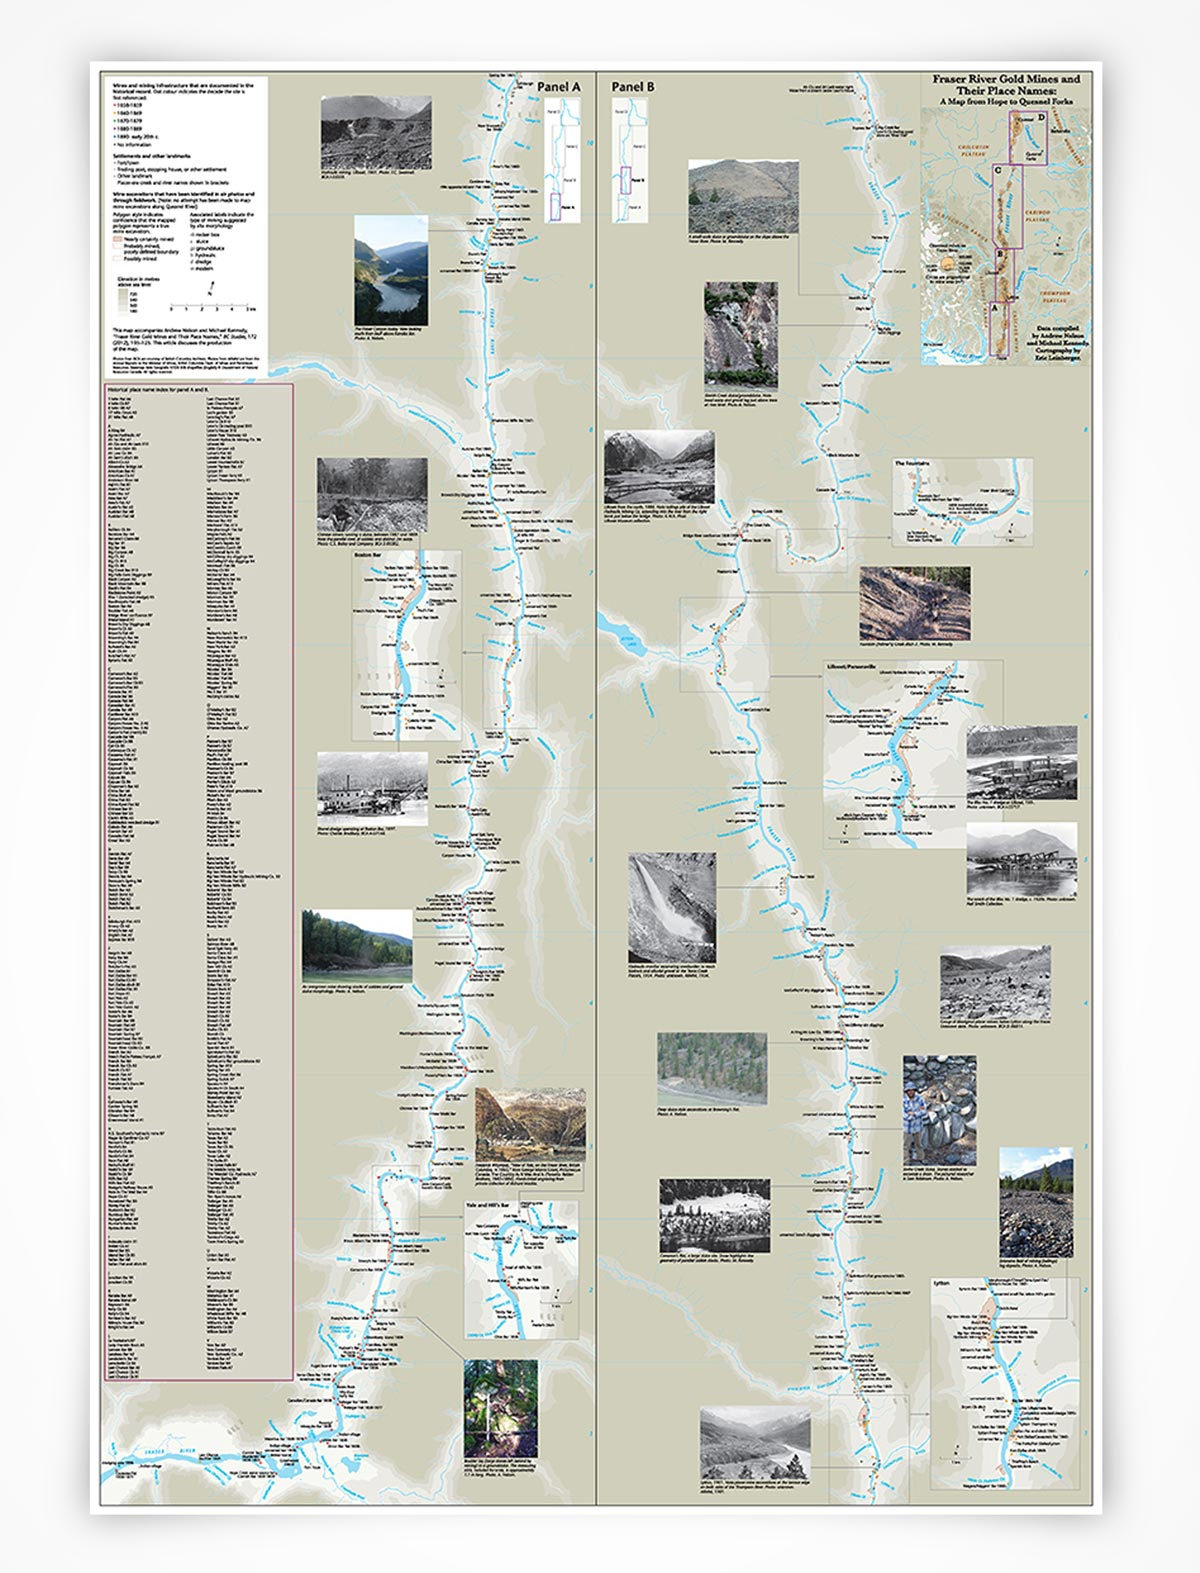 Map: Fraser River Gold Mines and their Place Names